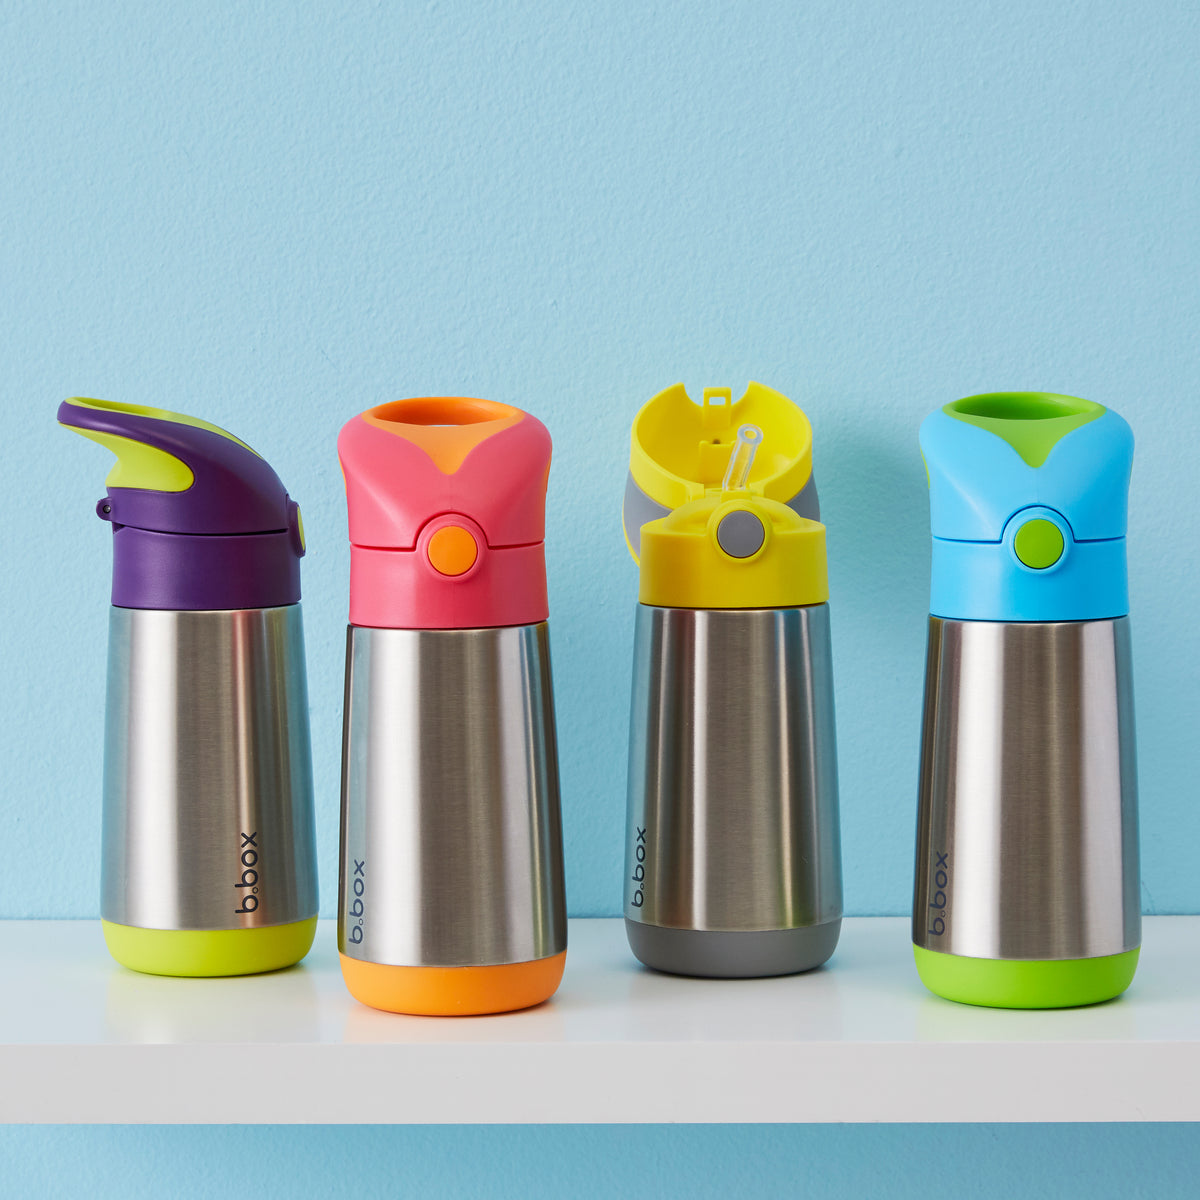 b.box Insulated Drink Bottle - Lemon Sherbert-Drink Bottle-Lunchbox Mini